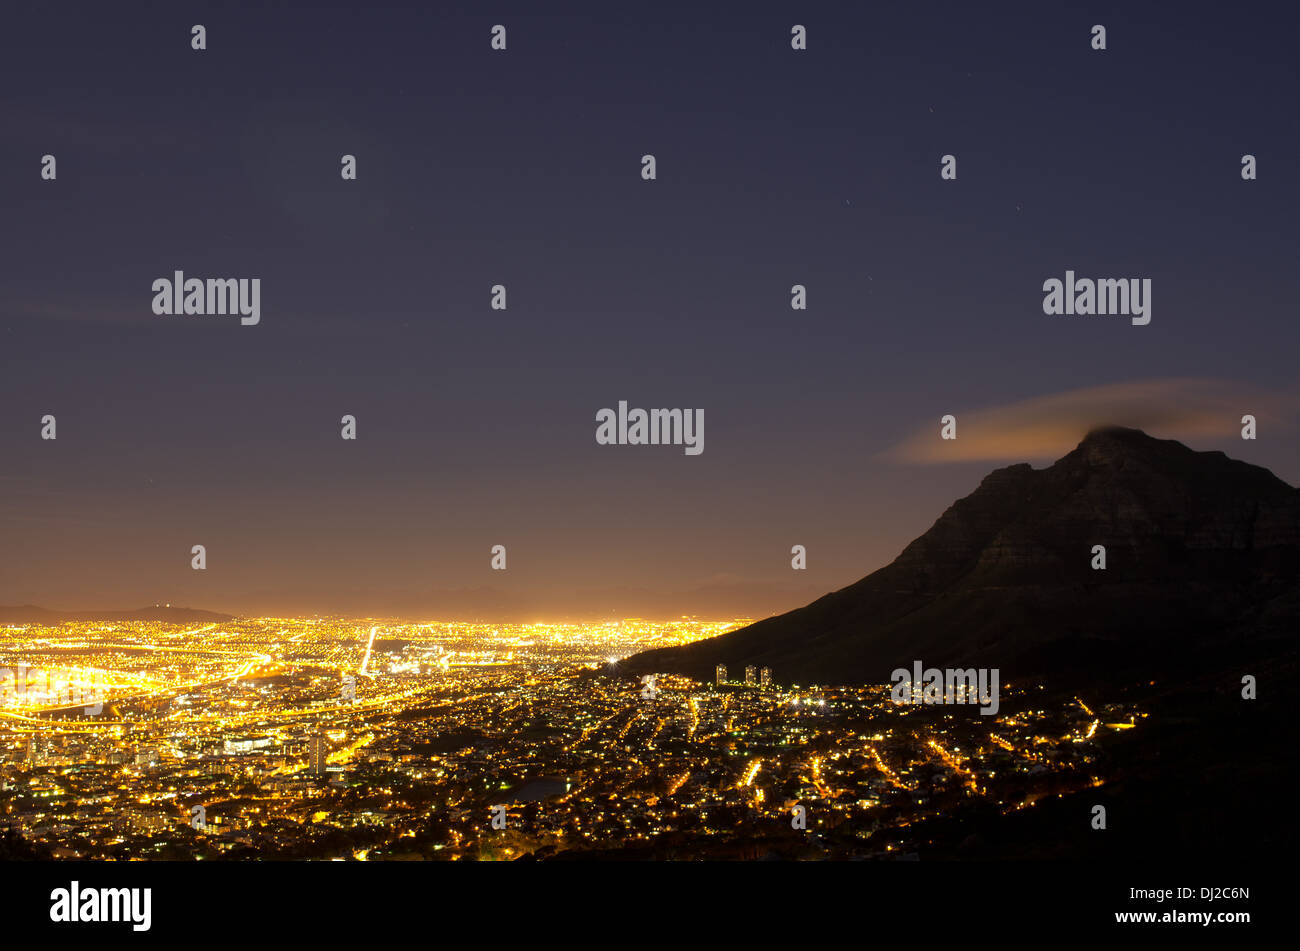 Nightscape of Cape Town, South Africa. View is from Lion's Head, overlooking Devil's Peak. - Stock Image